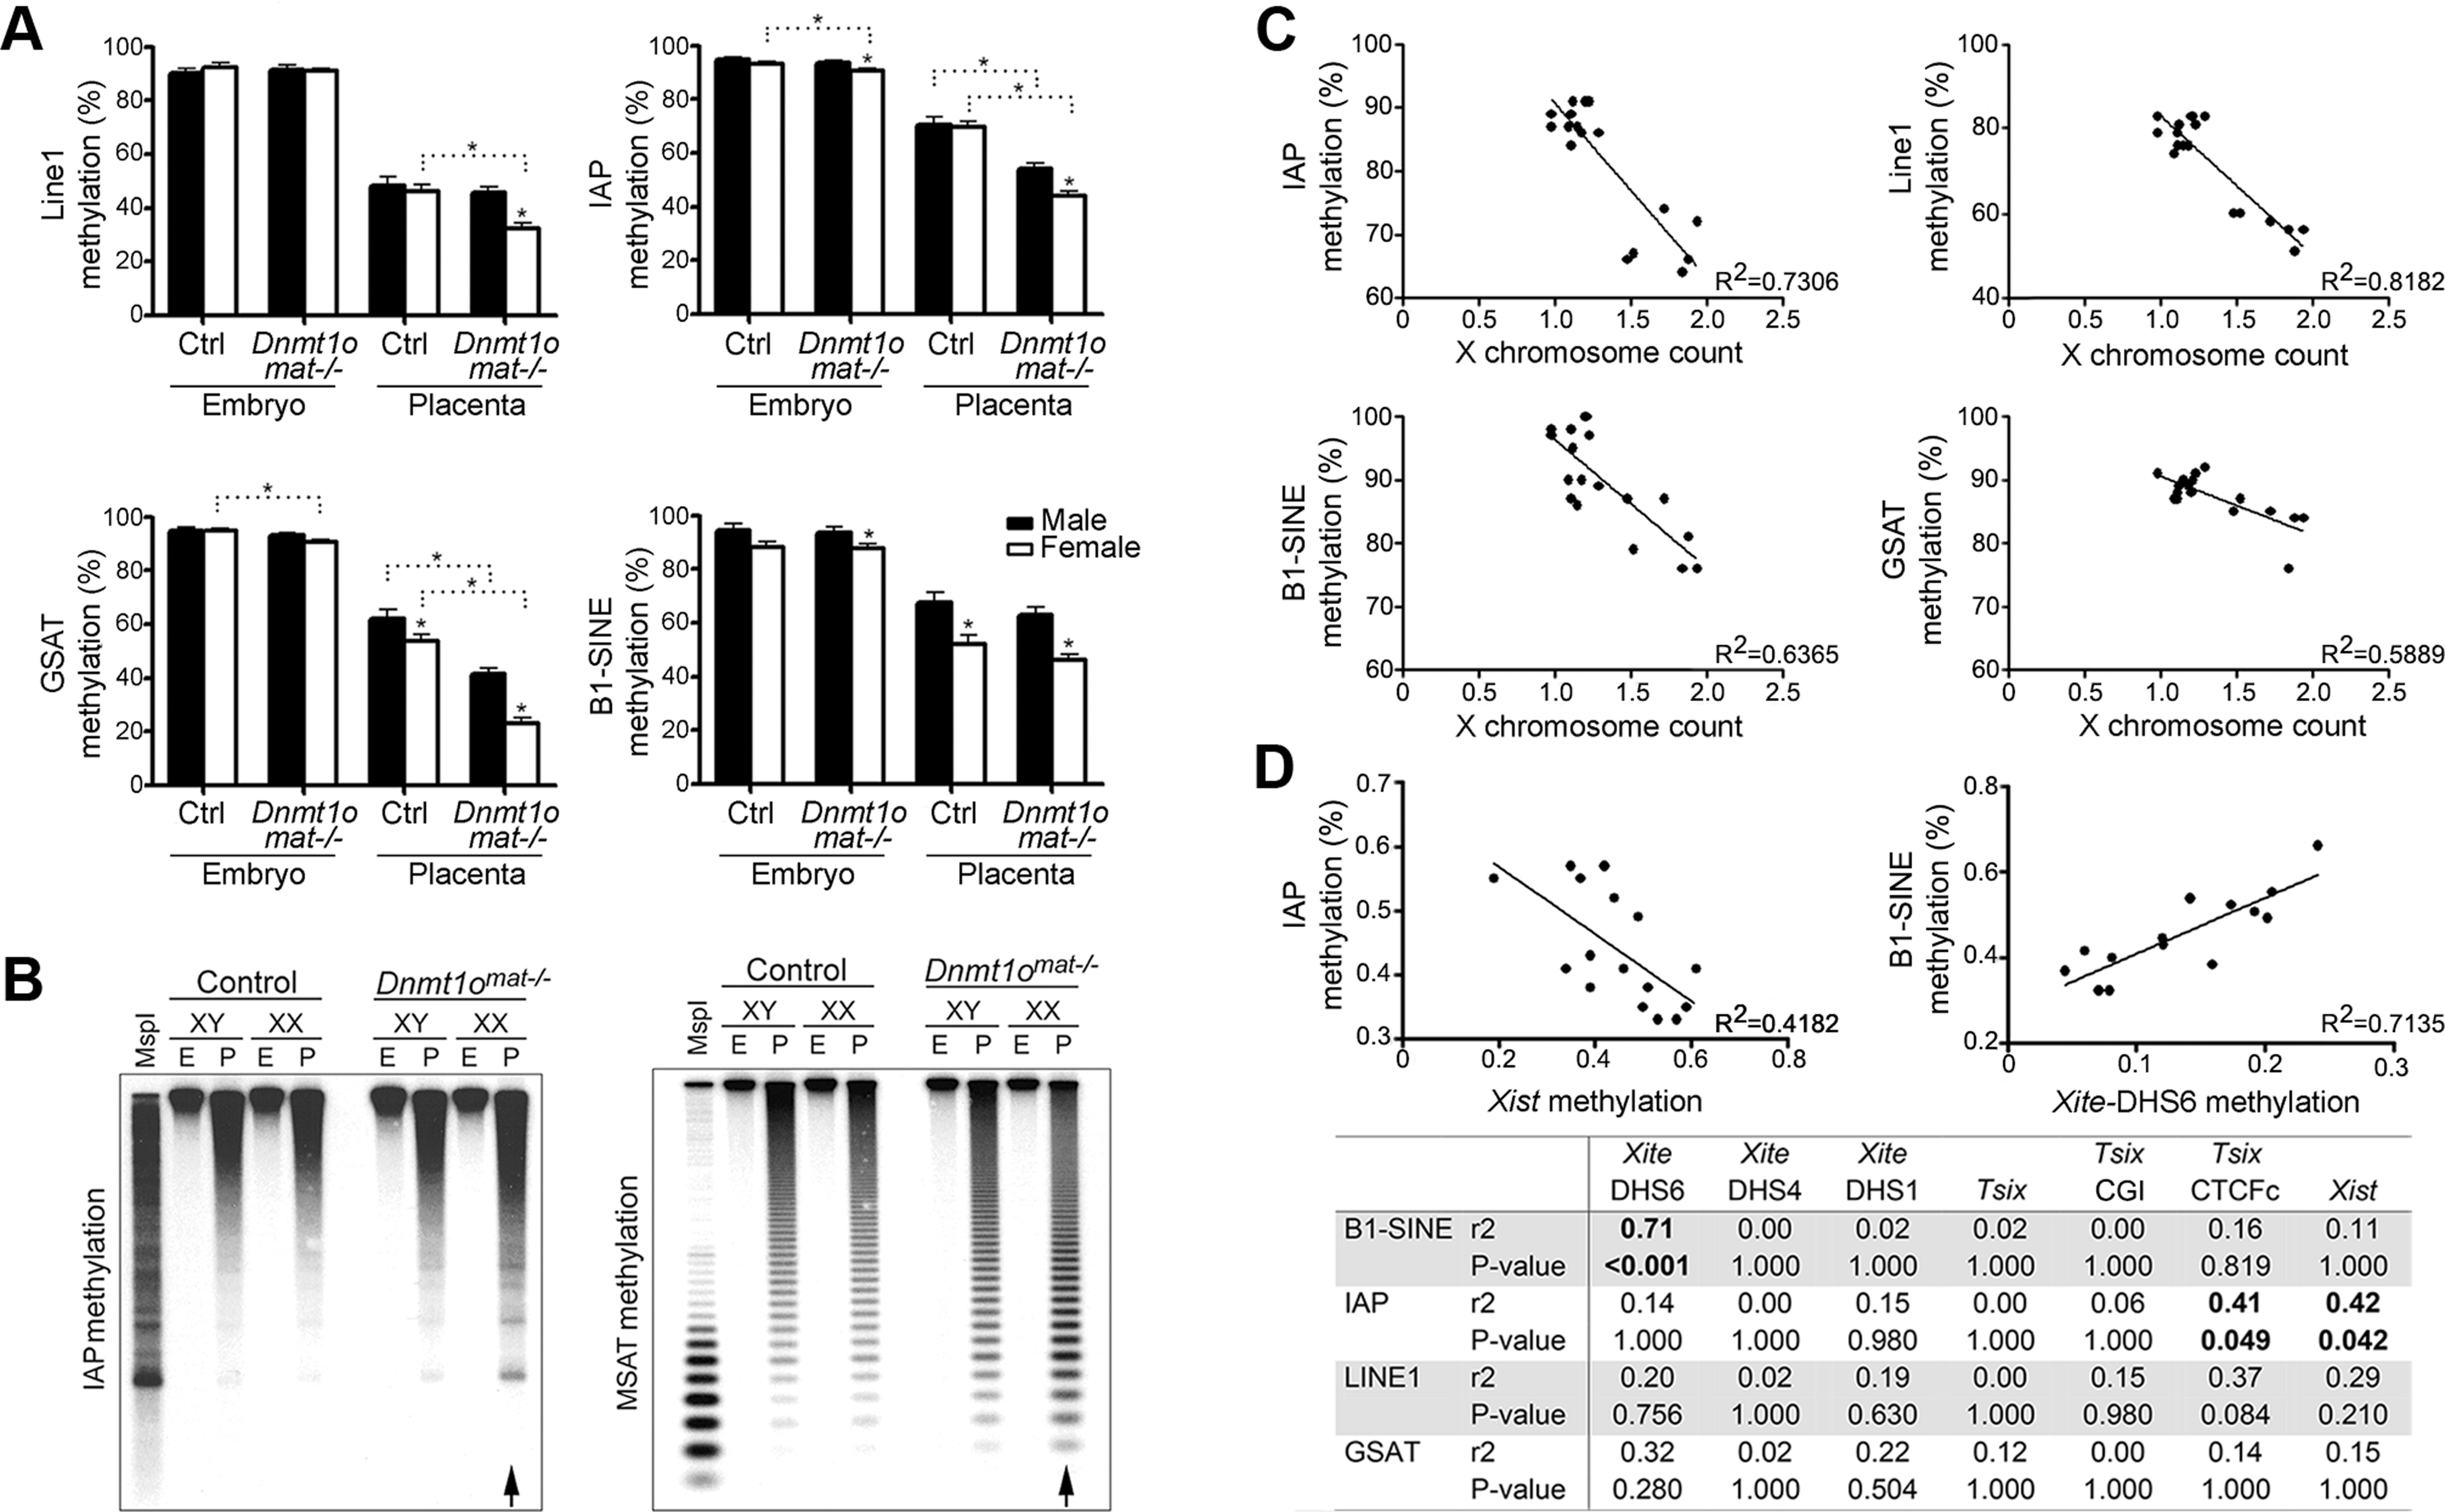 DNA methylation analysis of repeat elements in <i>Dnmt1o<sup>mat−/−</sup></i> 9.5dpc embryos and placentae, as well as in ES cells.